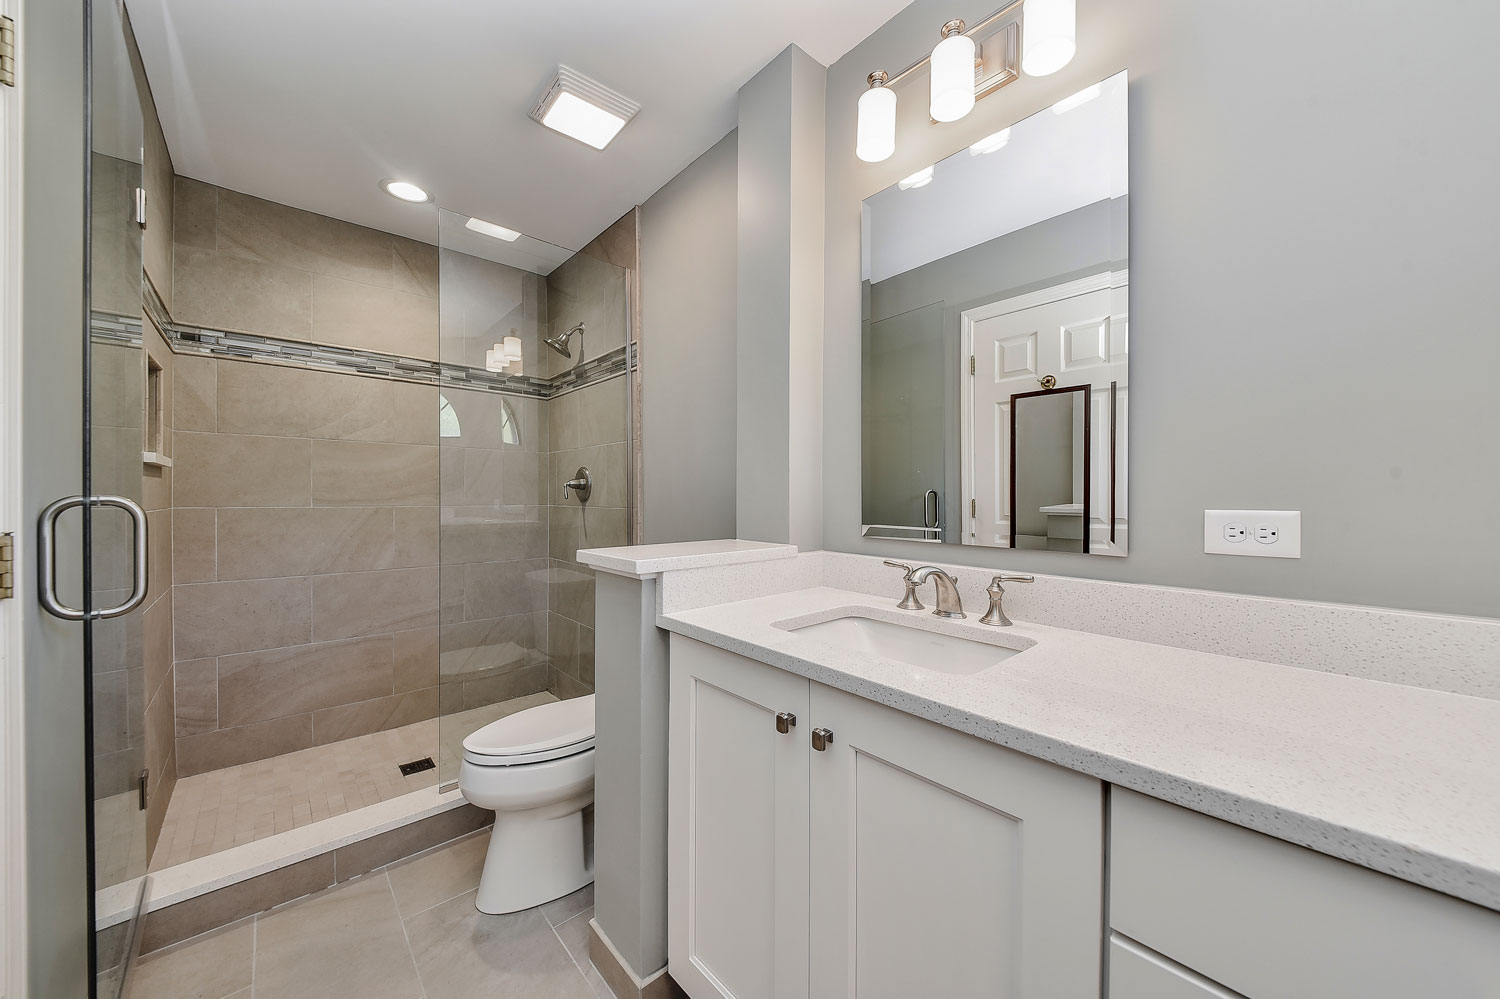 Charles cindy 39 s master bathroom remodel pictures home Bathroom remodeling services